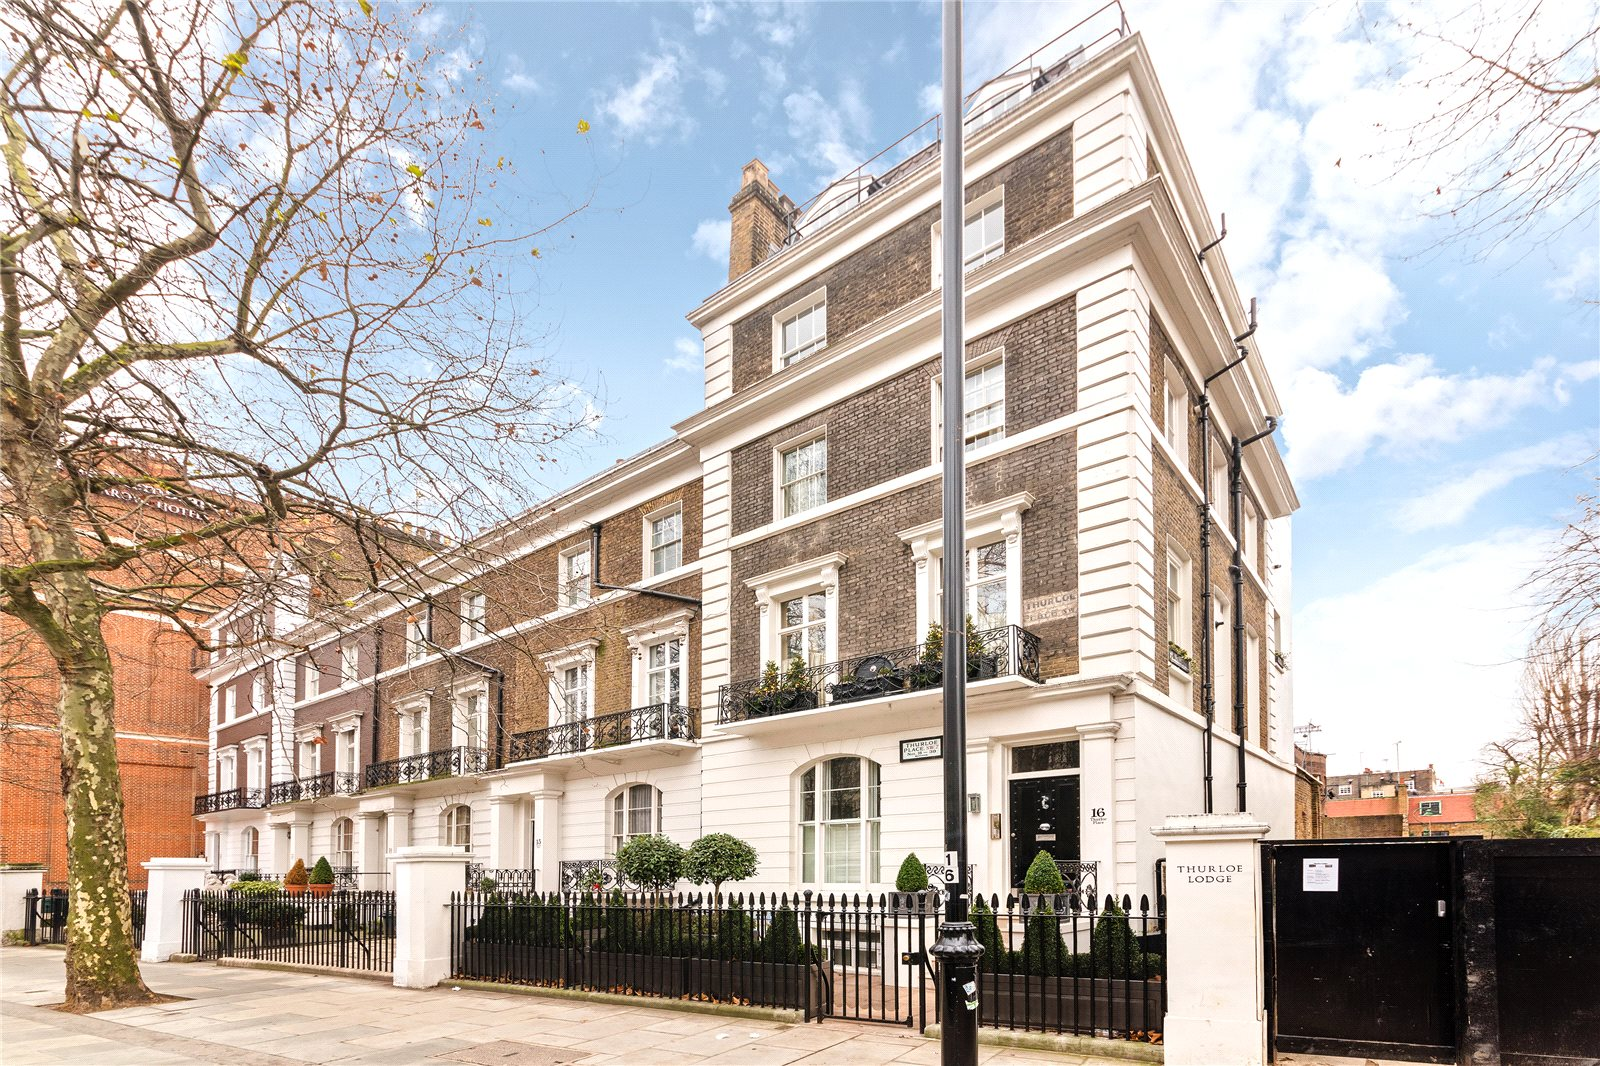 Additional photo for property listing at Thurloe Place, South Kensington, SW7 South Kensington, Inglaterra